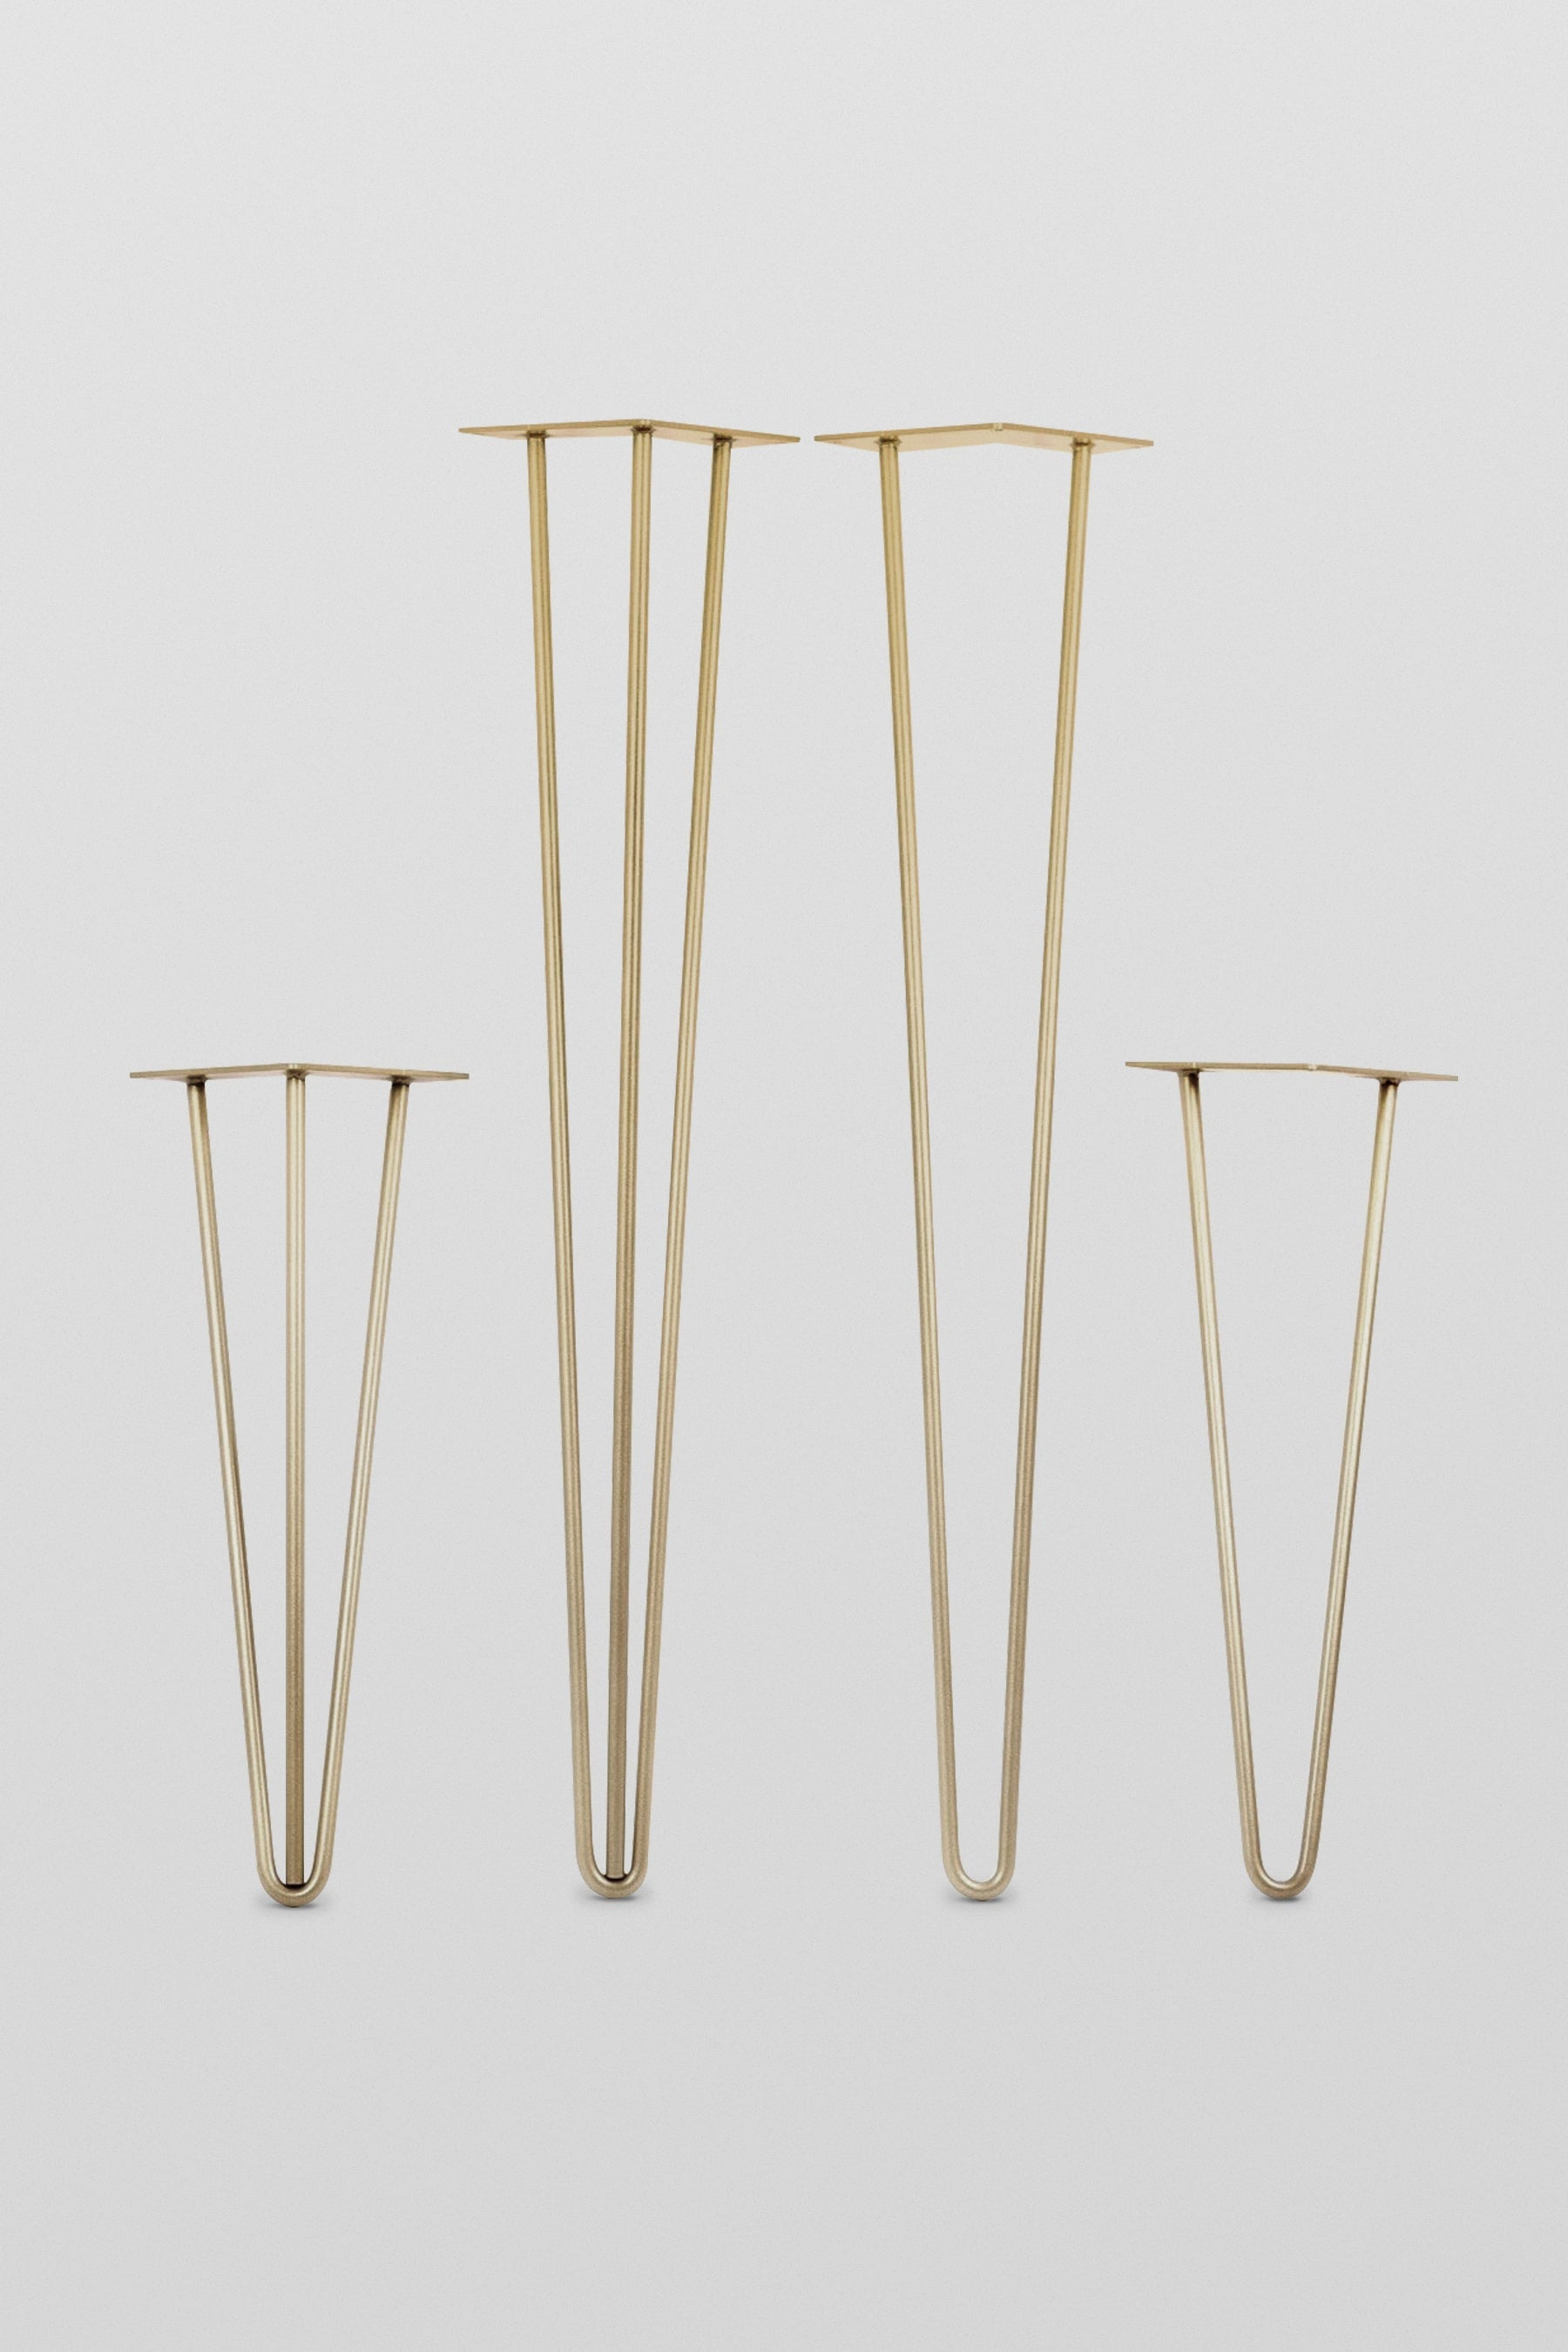 Furniture Legs Los Angeles hairpinlegs | furniture legs & fixtures